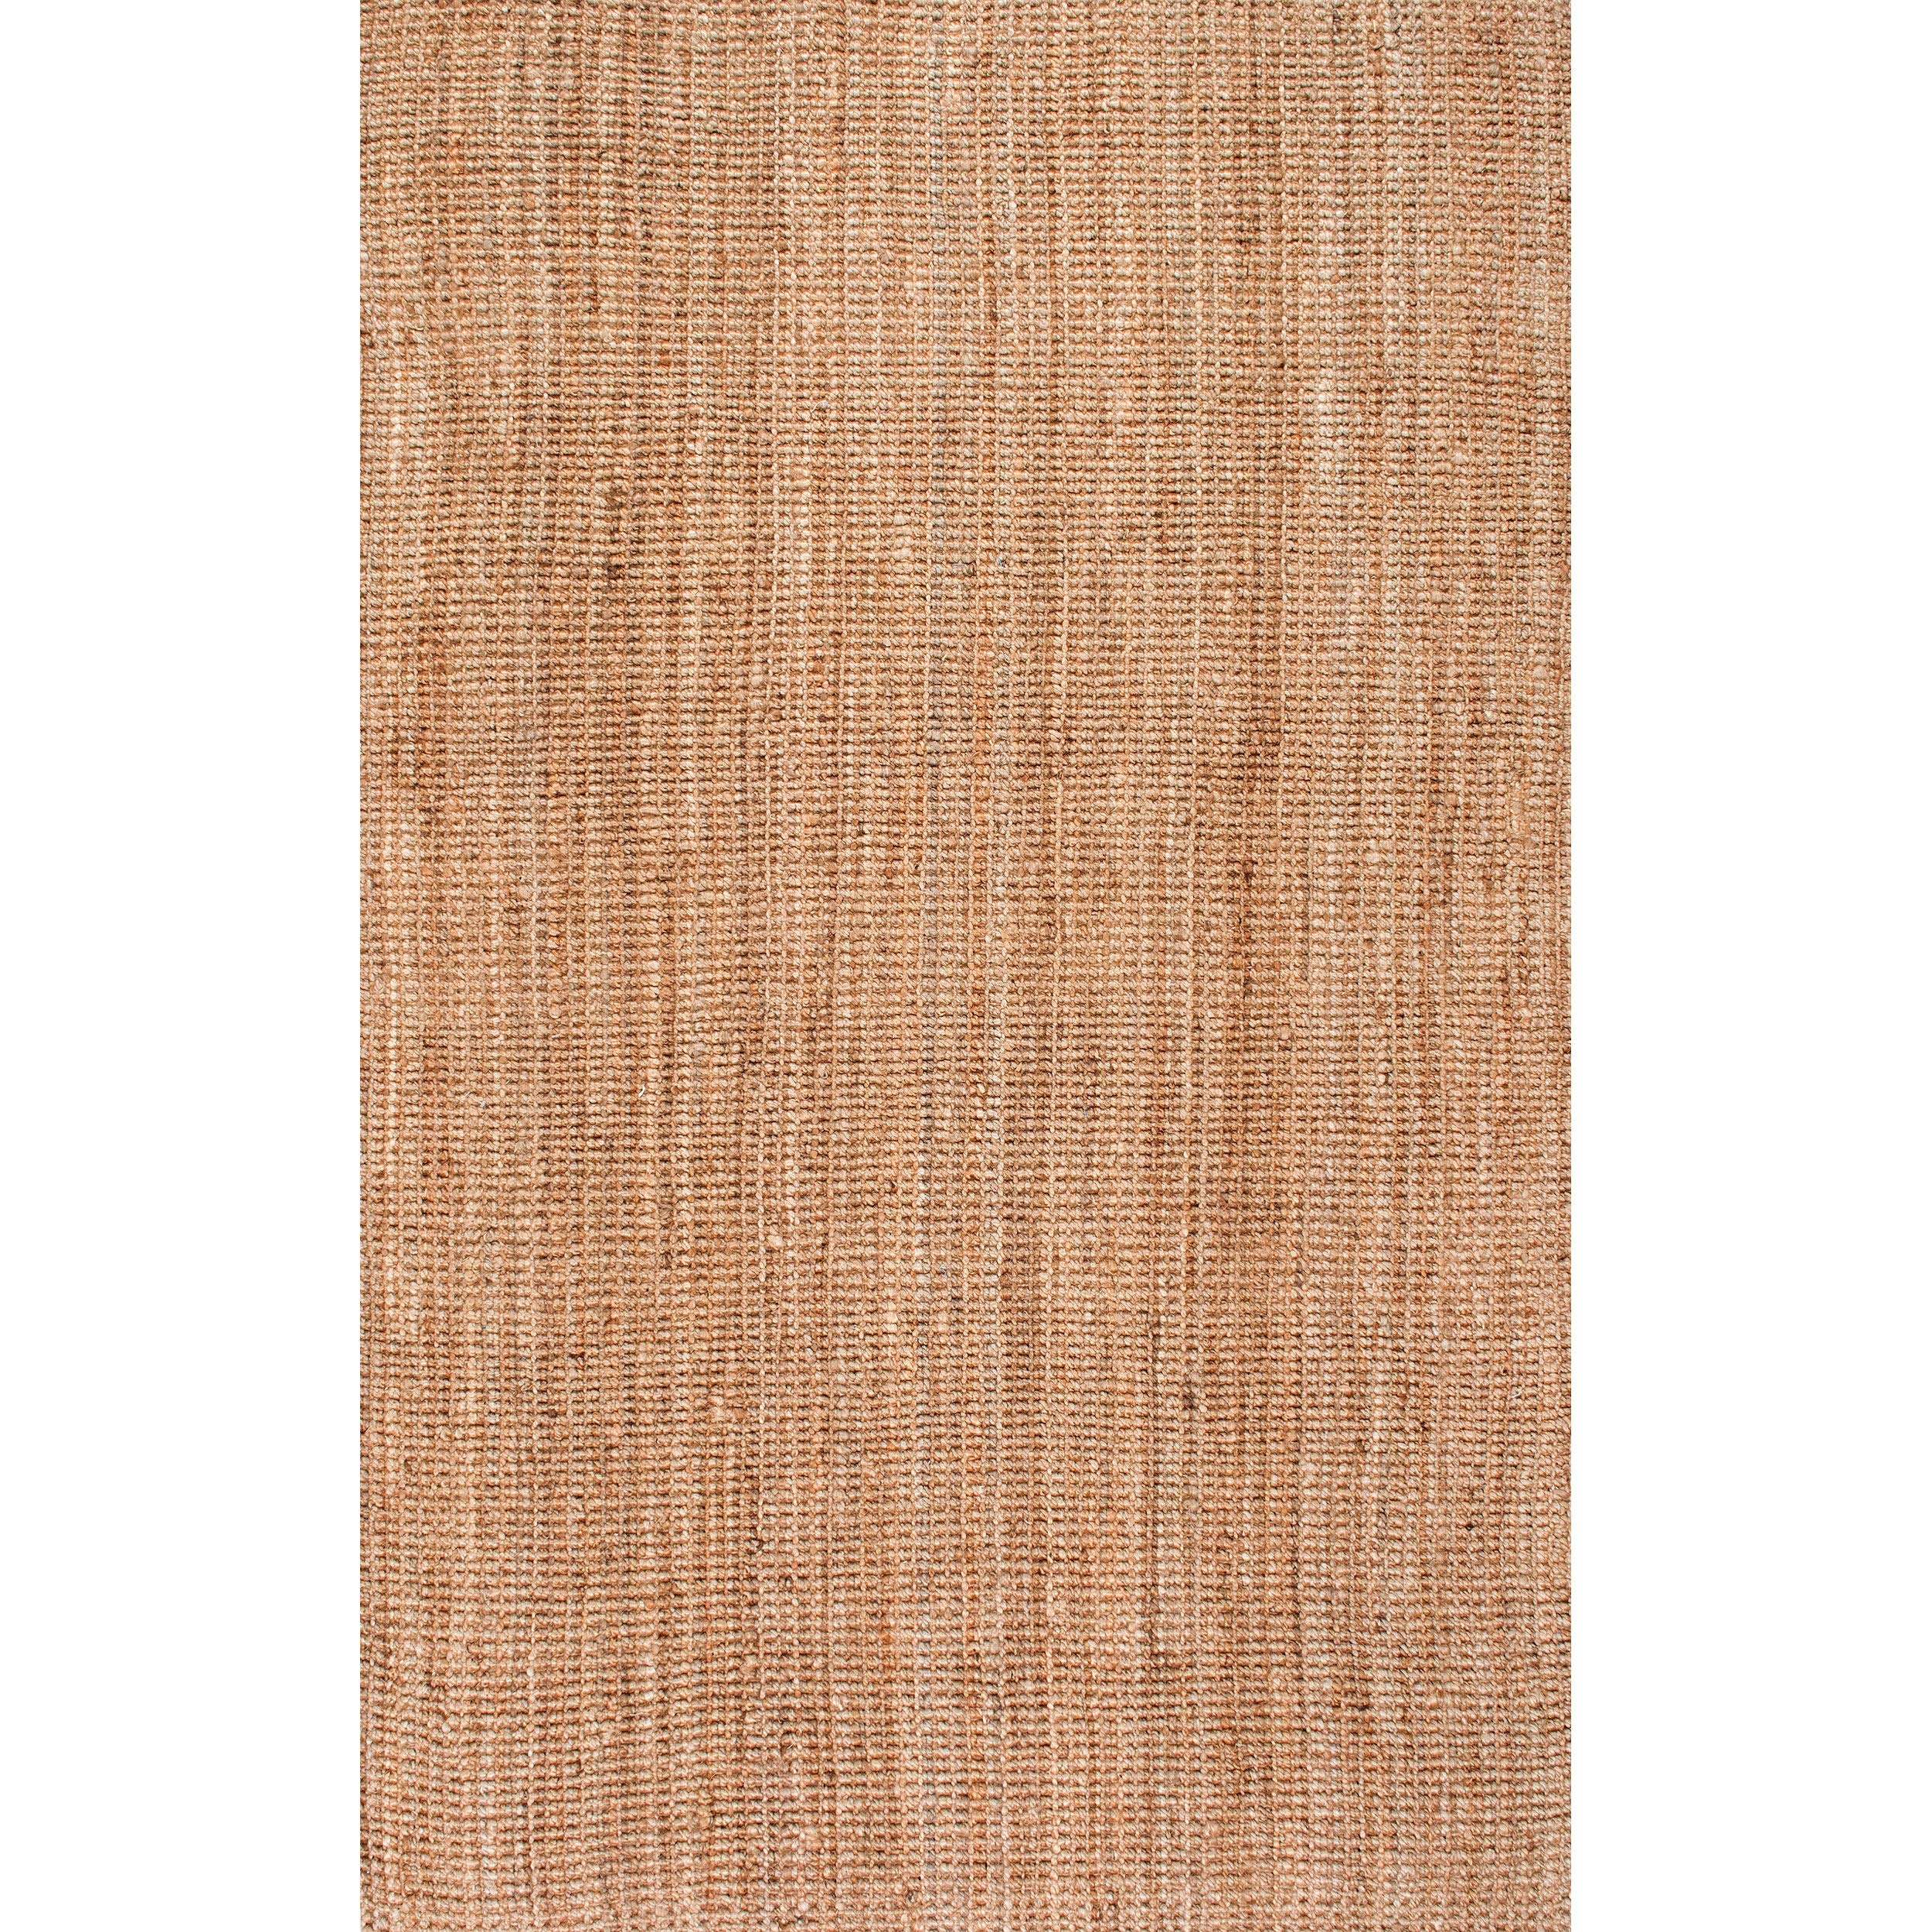 nuLOOM Handwoven Jute Ribbed Solid Area Rugs, 4' x 6', Natural by nuLOOM (Image #3)